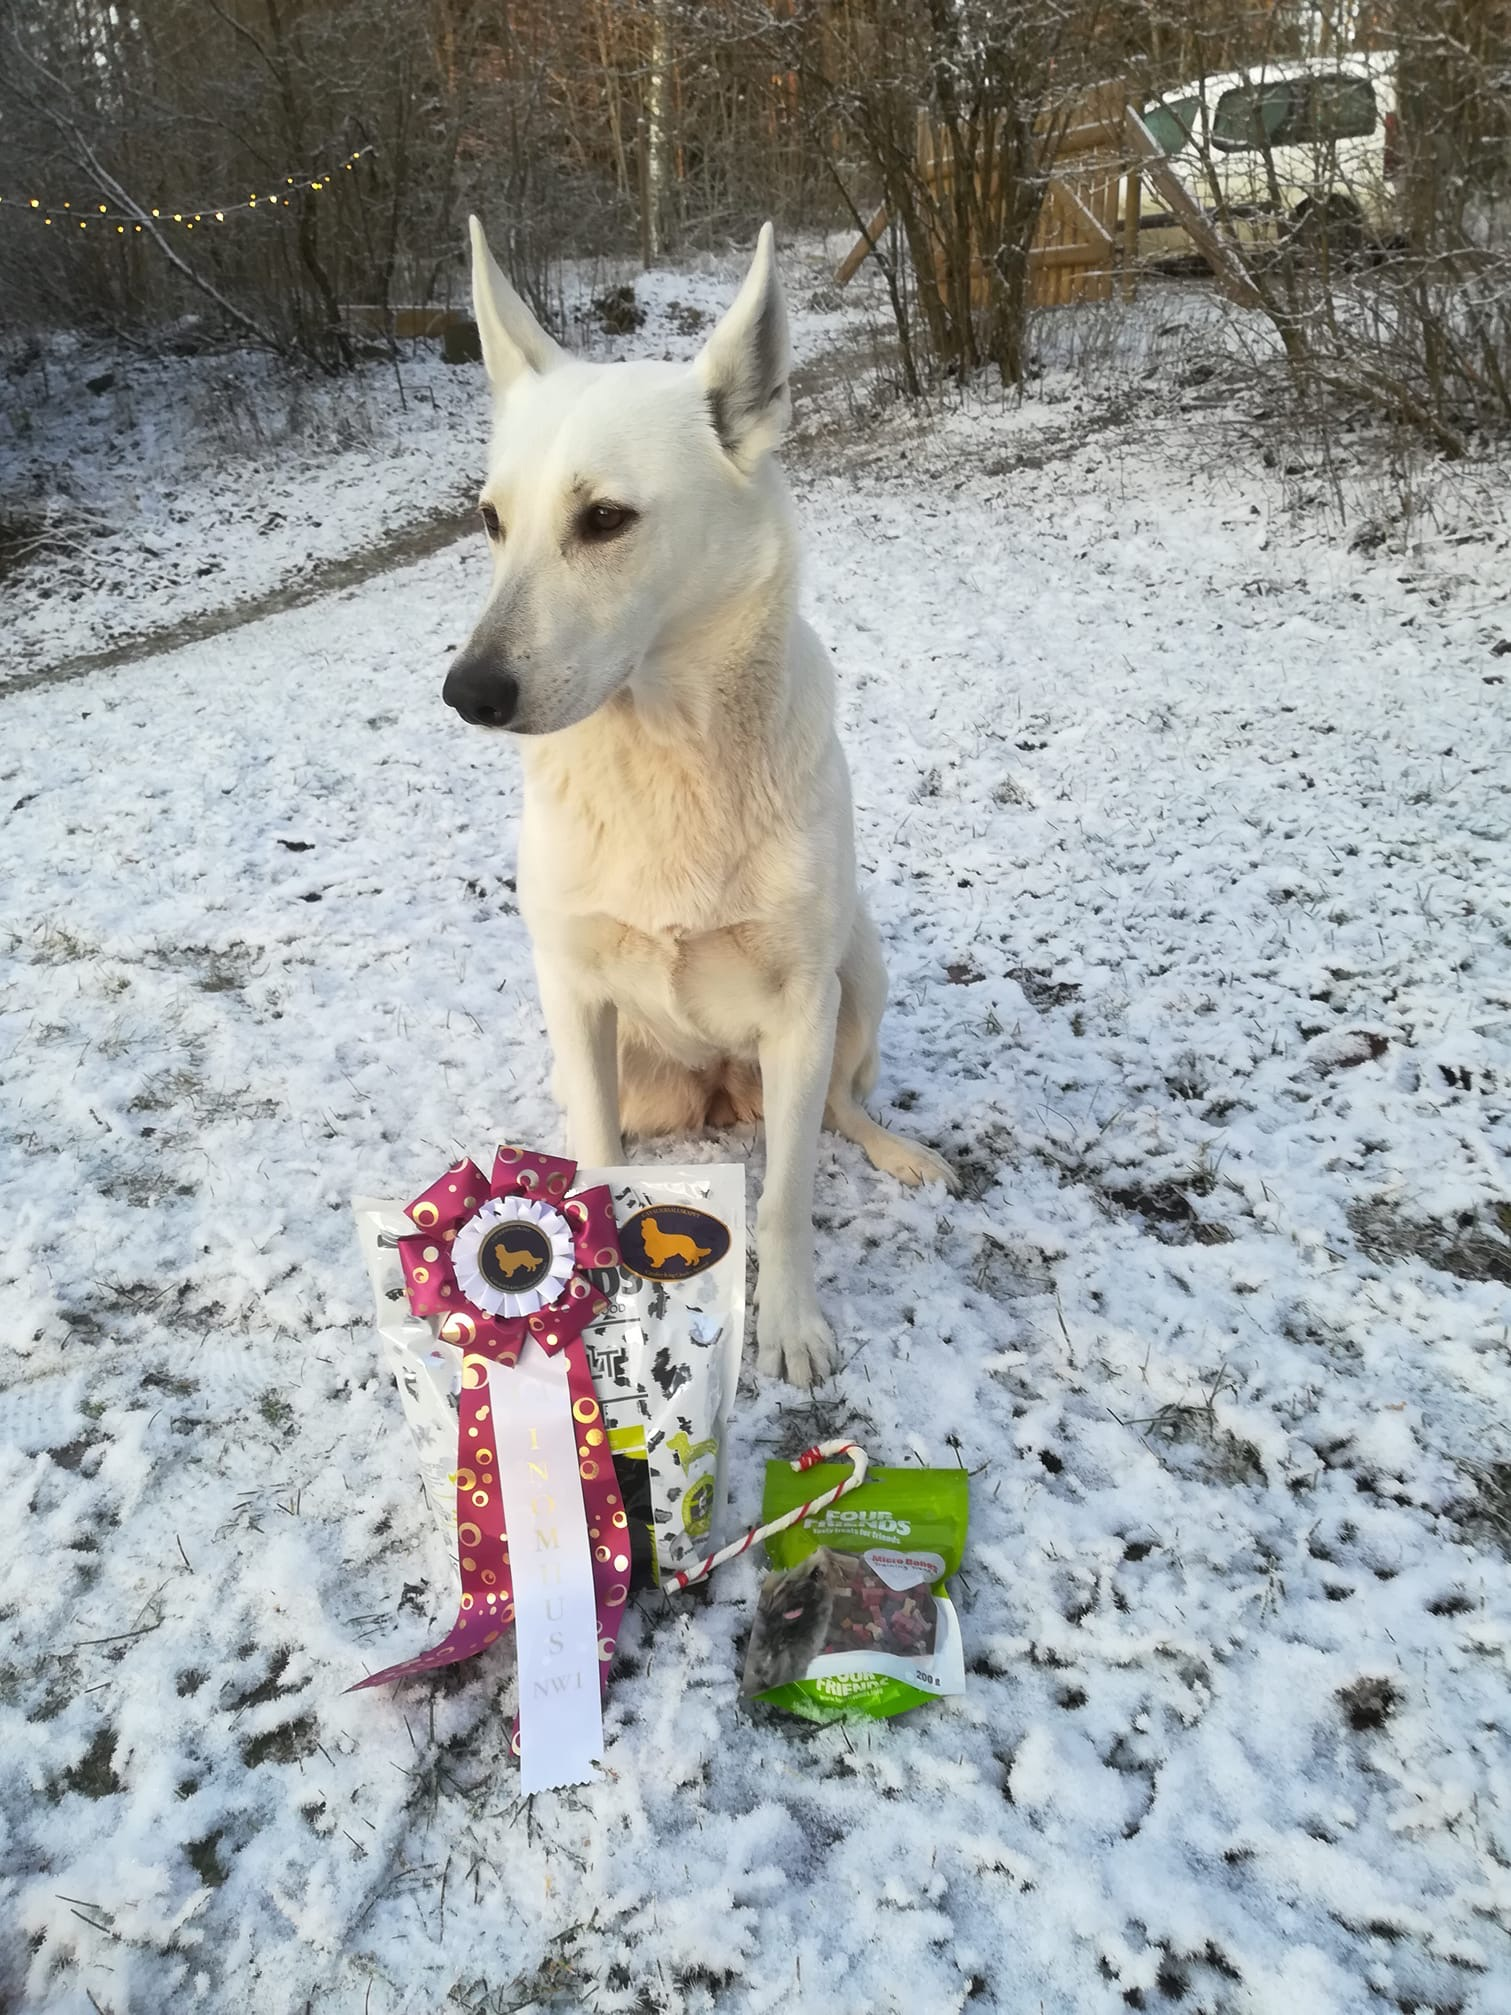 Born to Win Warrior Yara 1st Place in Search in Sweden 1